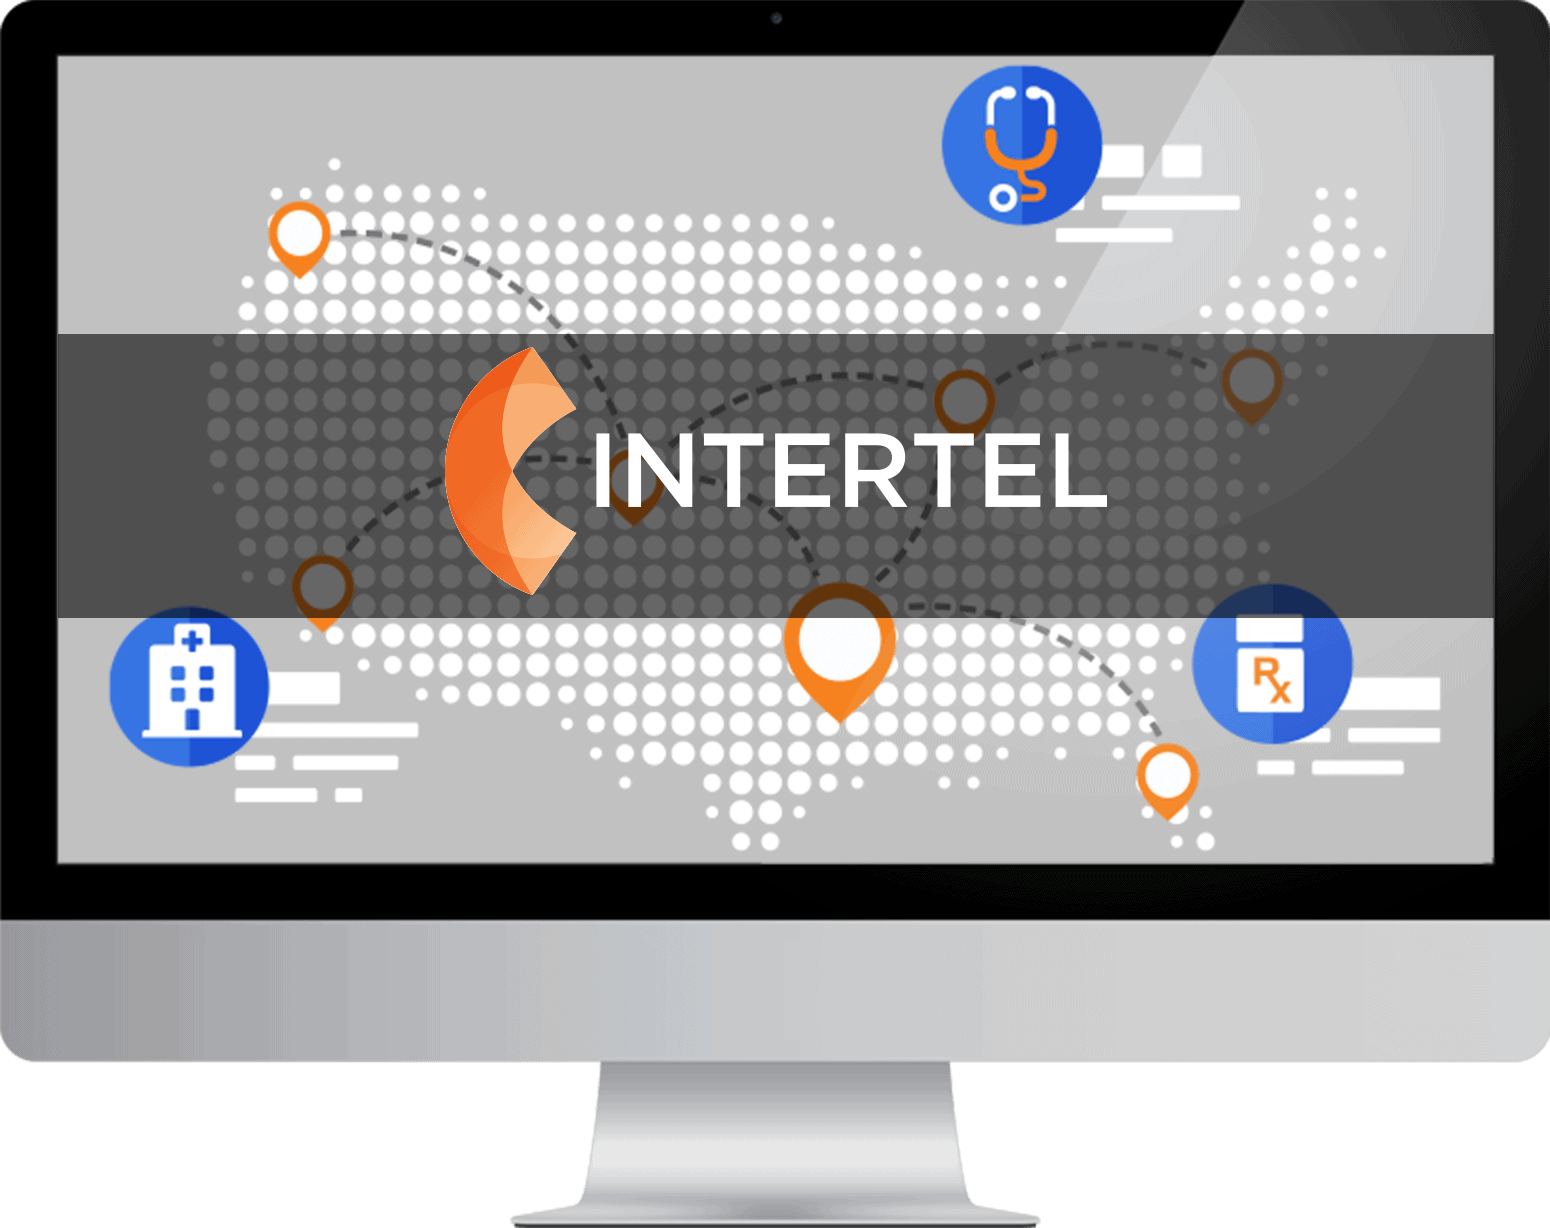 How Intertel Works